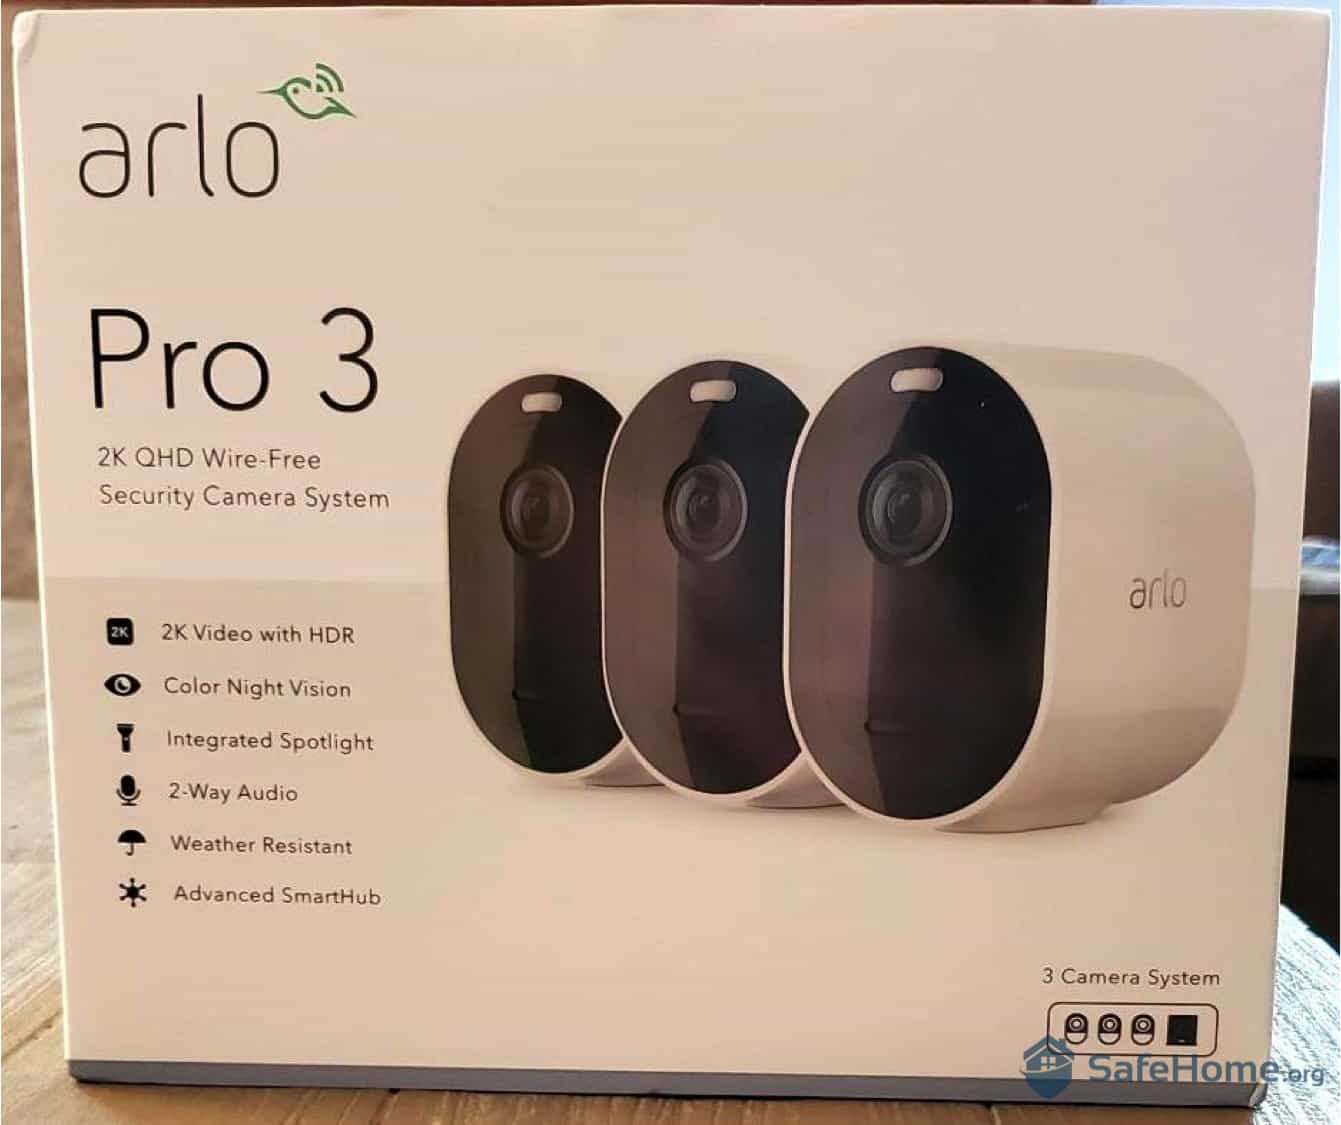 Arlo Pro 3 Packaging